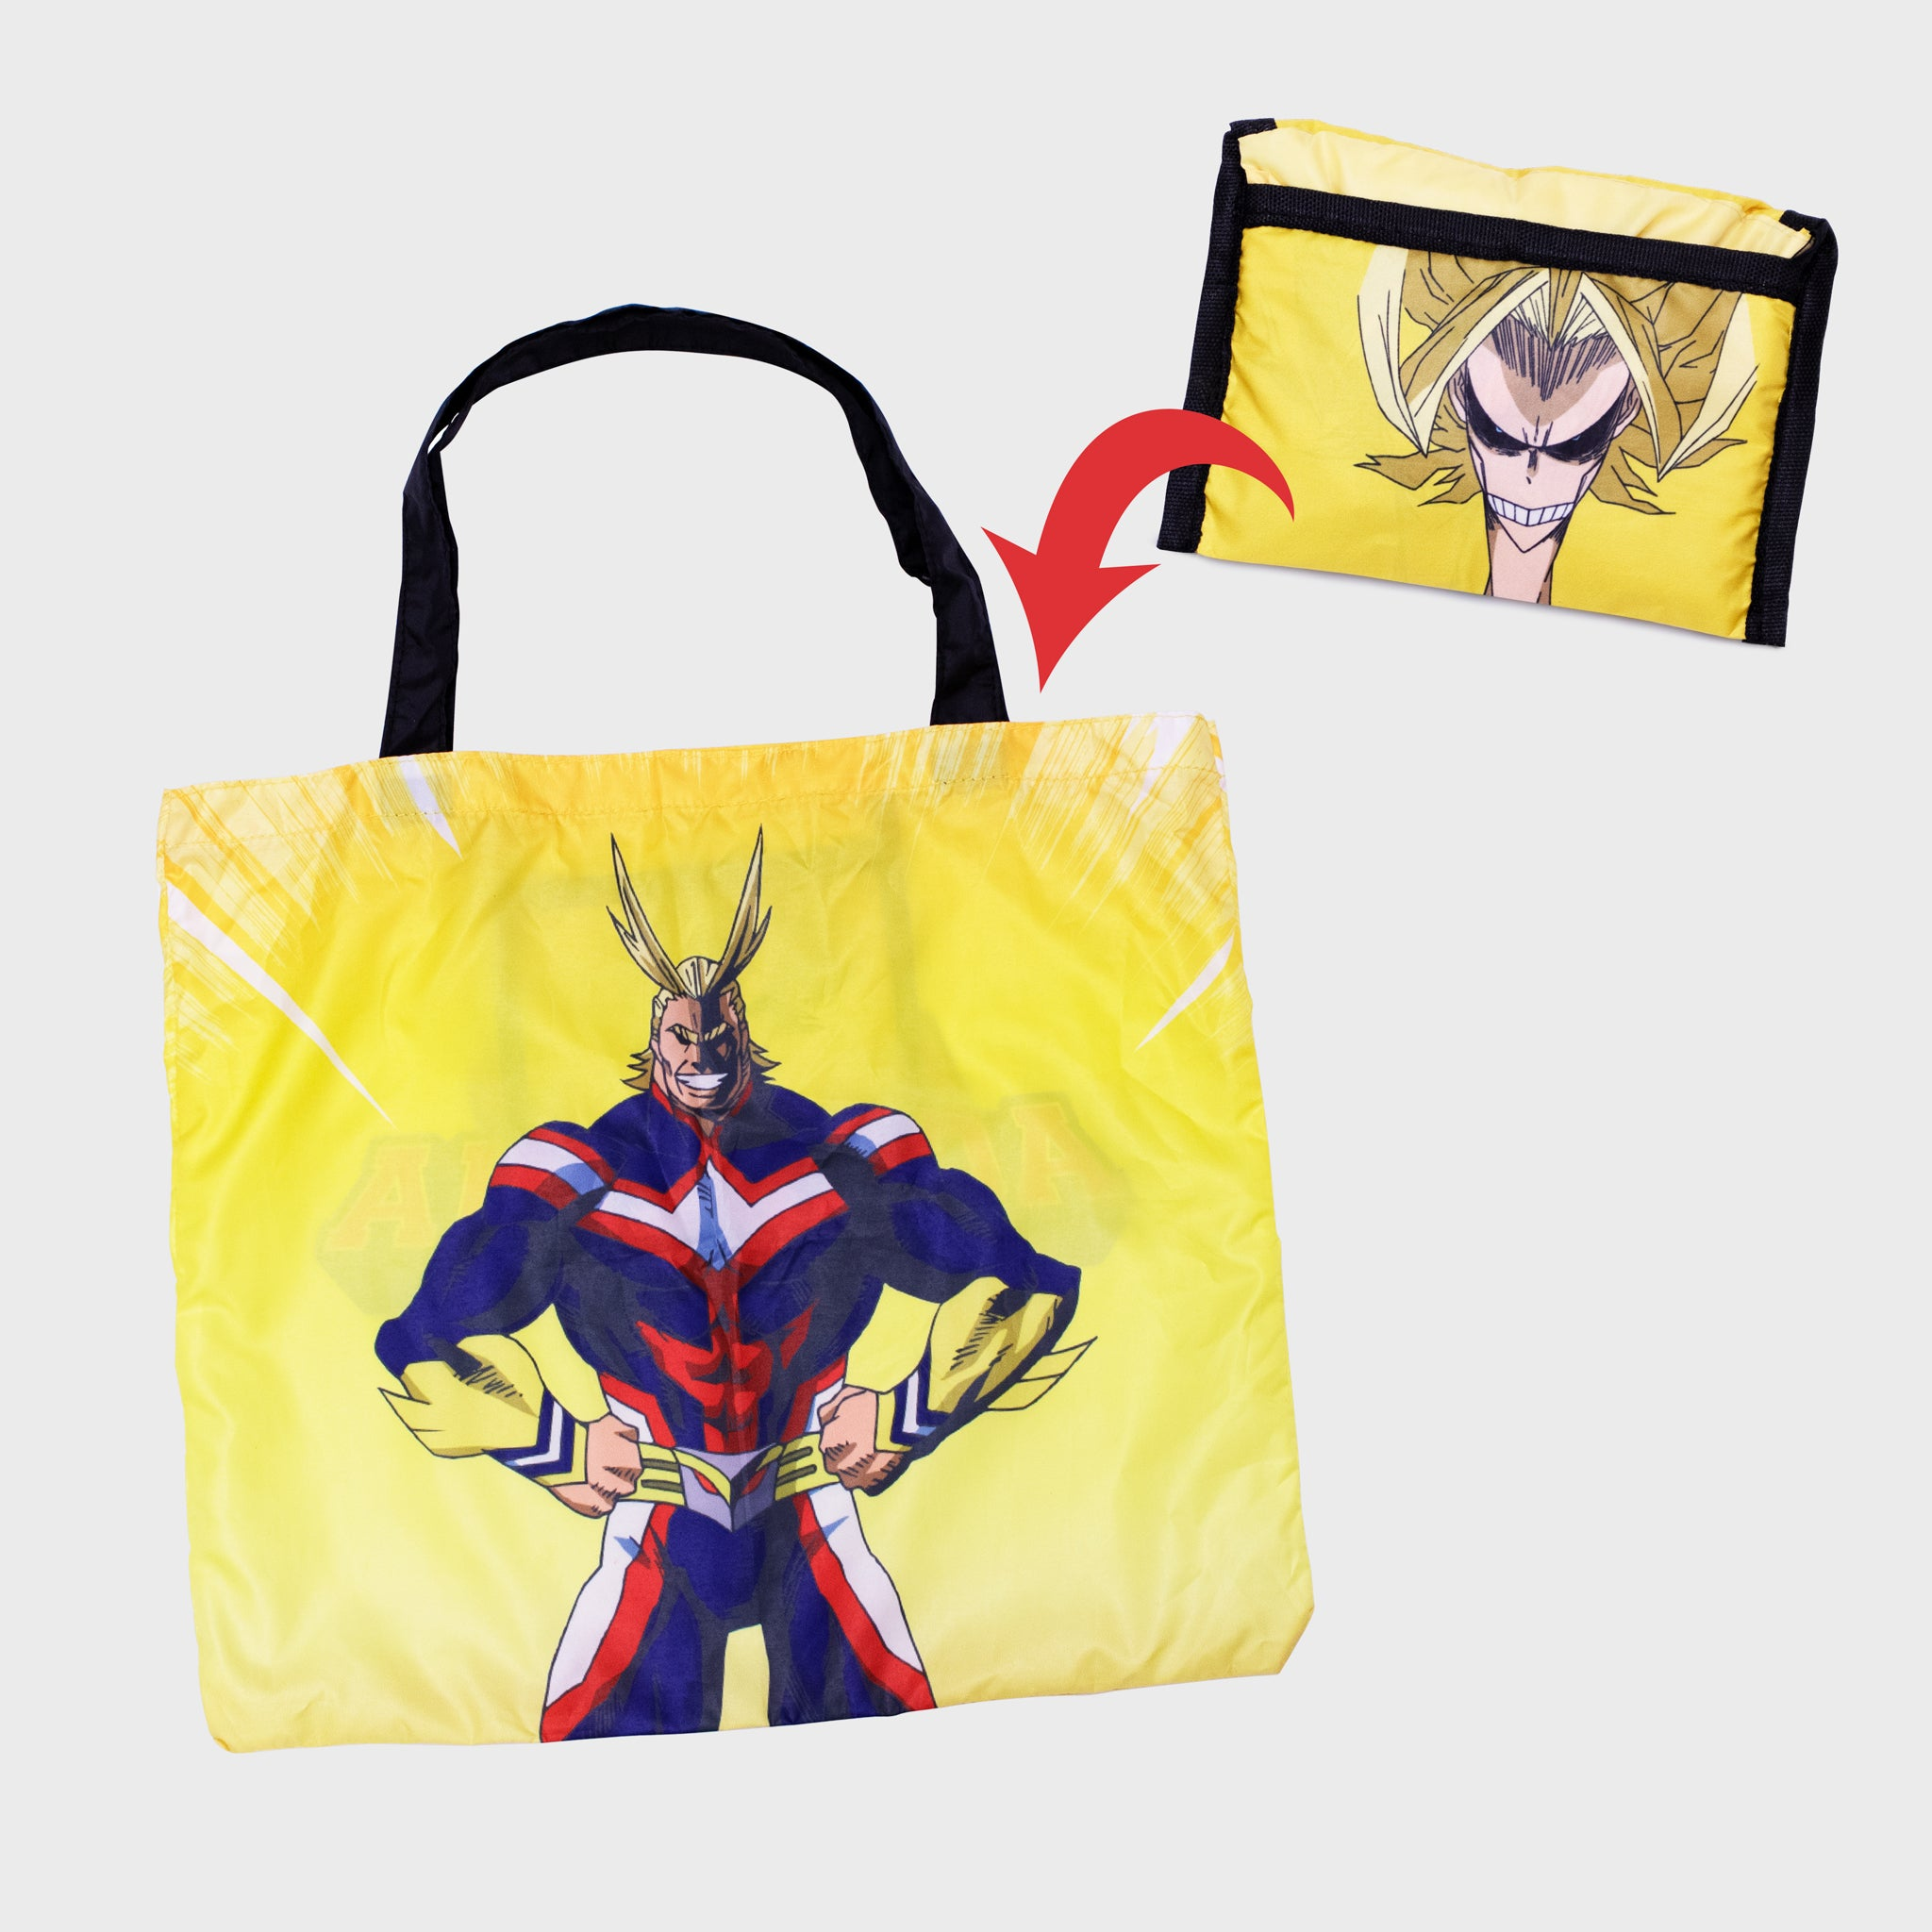 my hero academia mha bnha boku no hero academia deku izuku midoriya anime collector's box collectibles exclusives back to school all might accessories culturefly tote bag reusable foldable